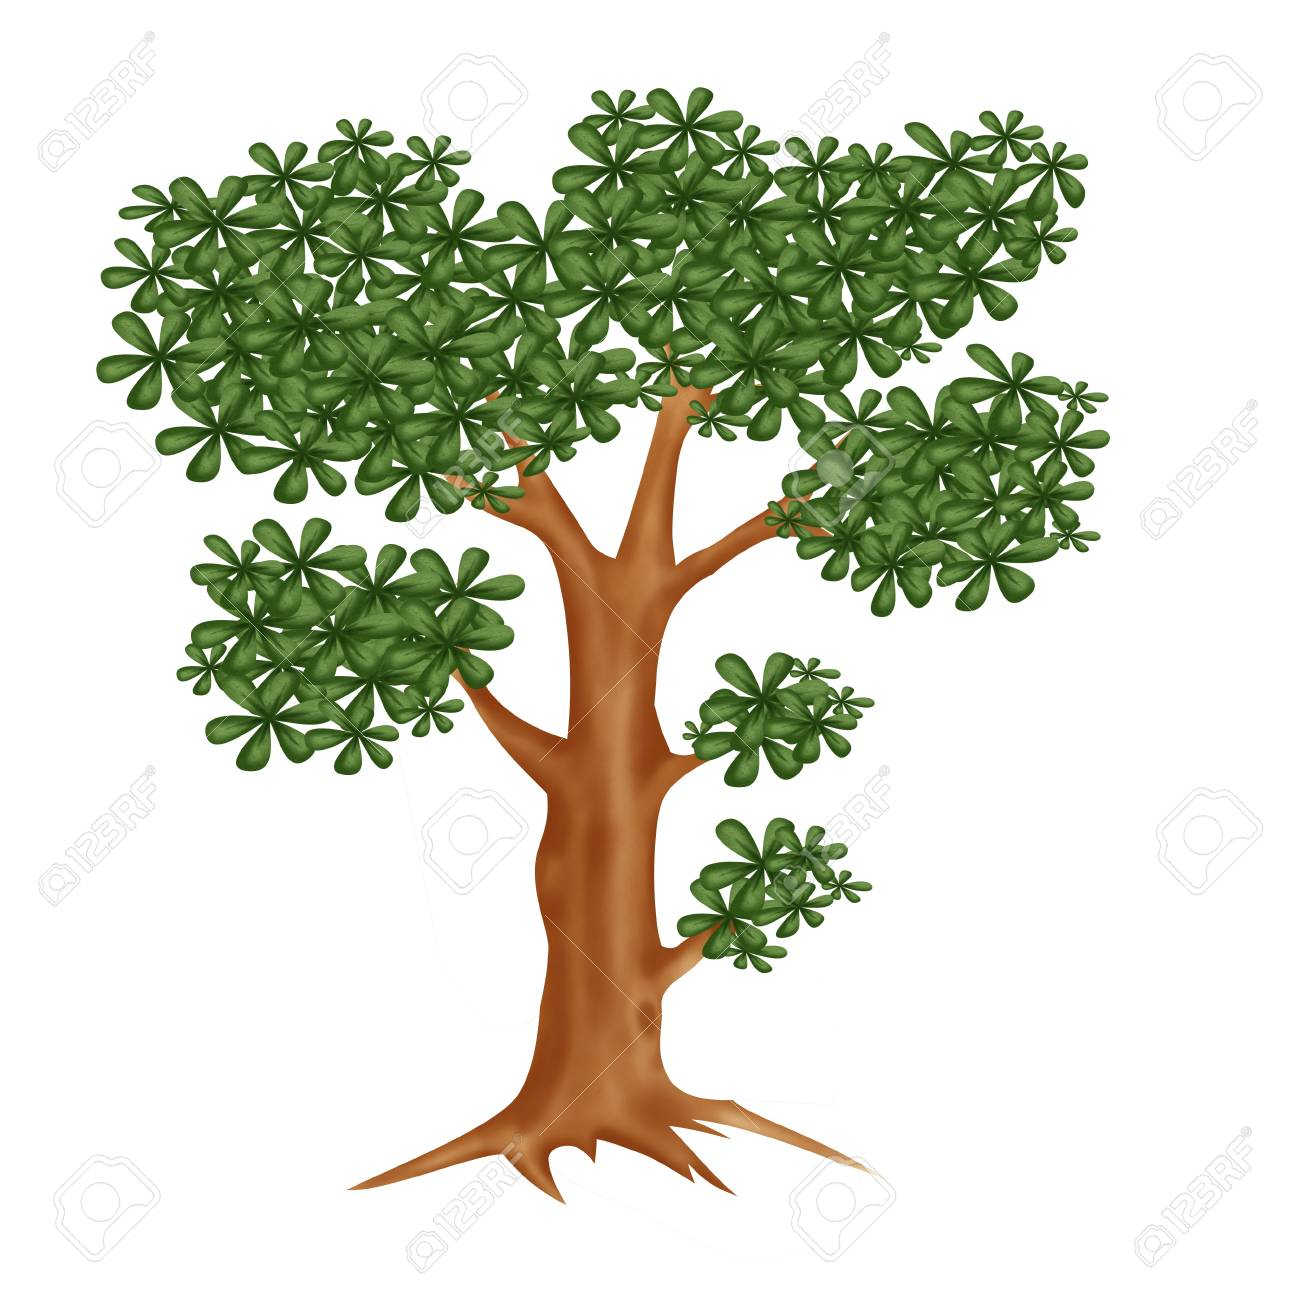 Tree with green leafag Stock Photo - 9733529